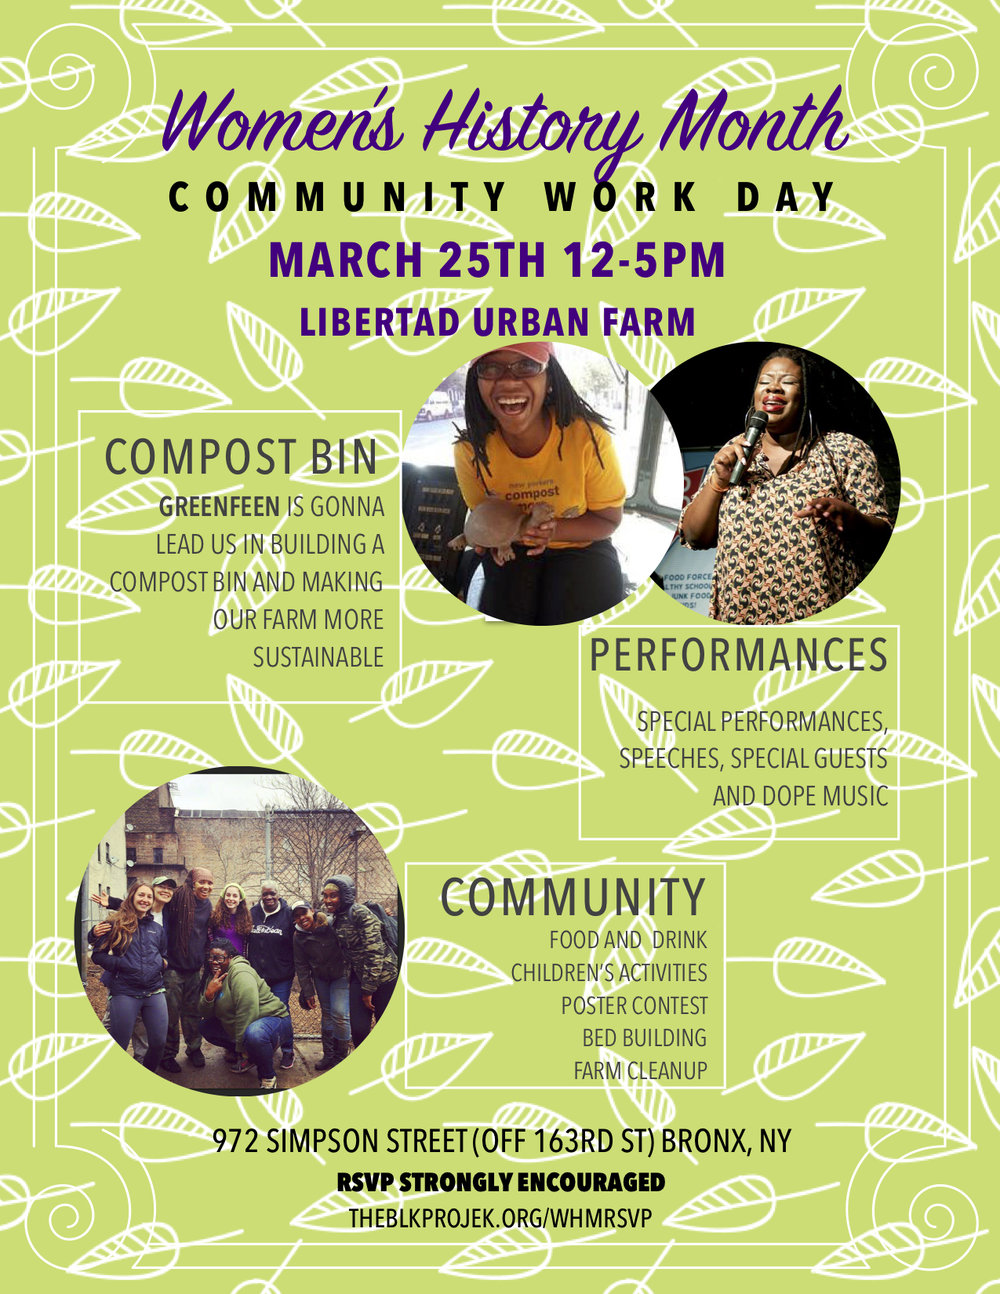 Honoring Women - What better way to commemorate Women's History Month then by participating in a day pf service on a women lead urban farm! Join us March 25th, 2018 from 12-5 PM at Libertad Urban Farm to officially kick off the season. It will be a day of performances, great music, a dope poster contest, yummy food and centering divine feminine energy.RSVP is strongly encouraged and gives us the opportunity to match you with an appropriate LUF farmer.